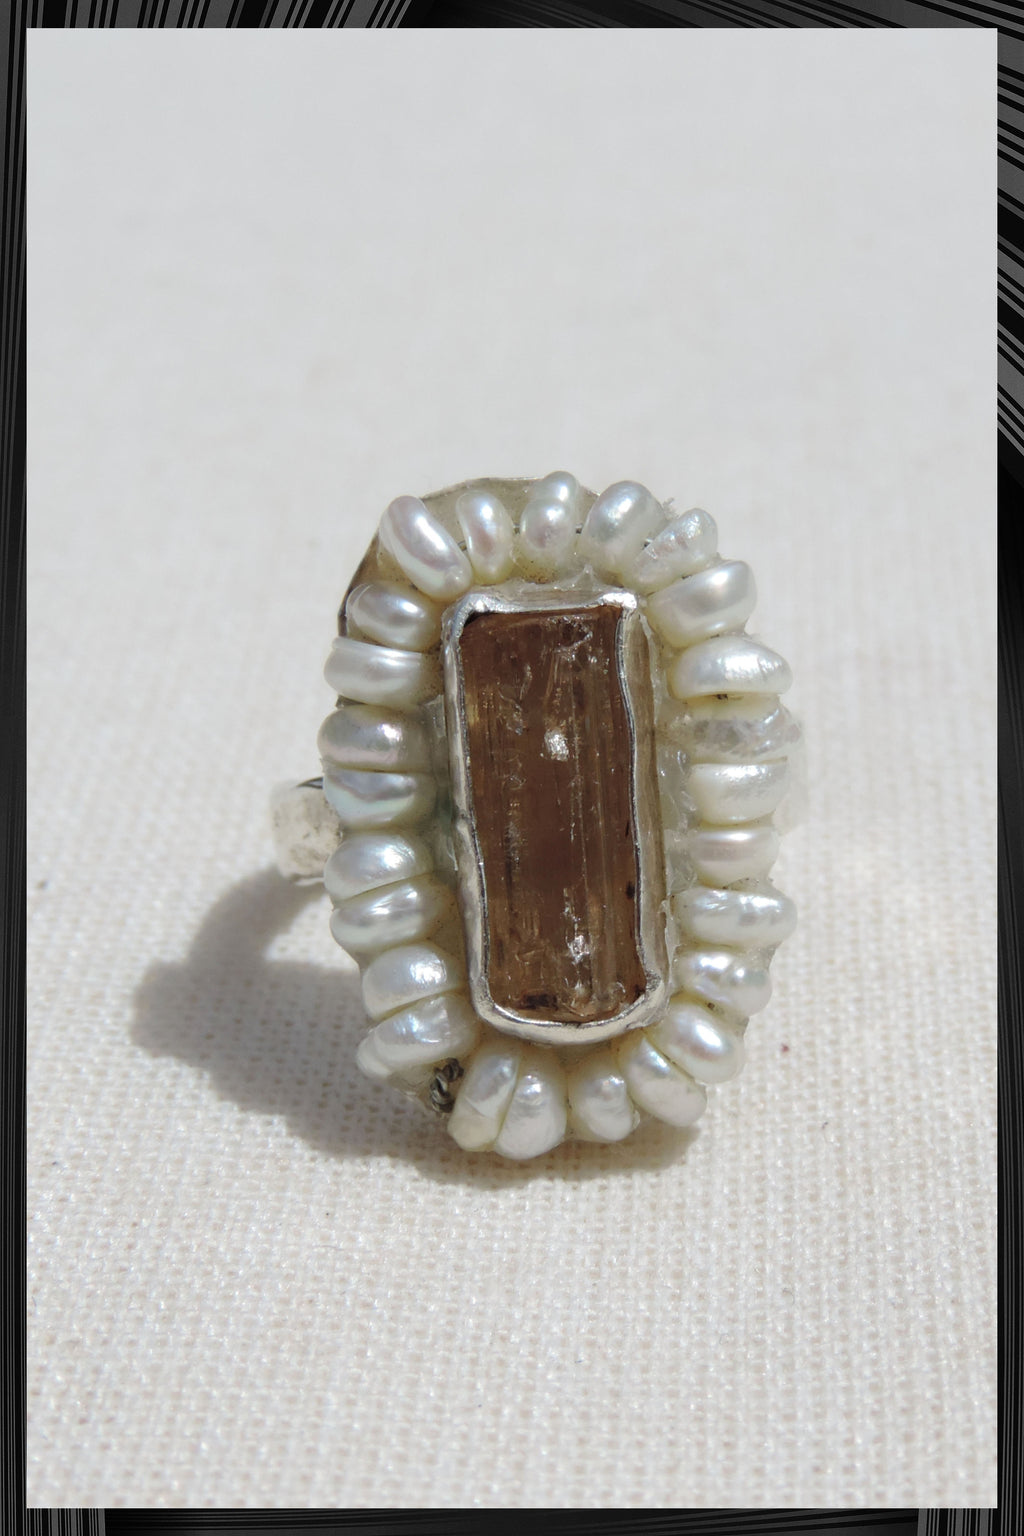 The Topaz and Pearl Ring